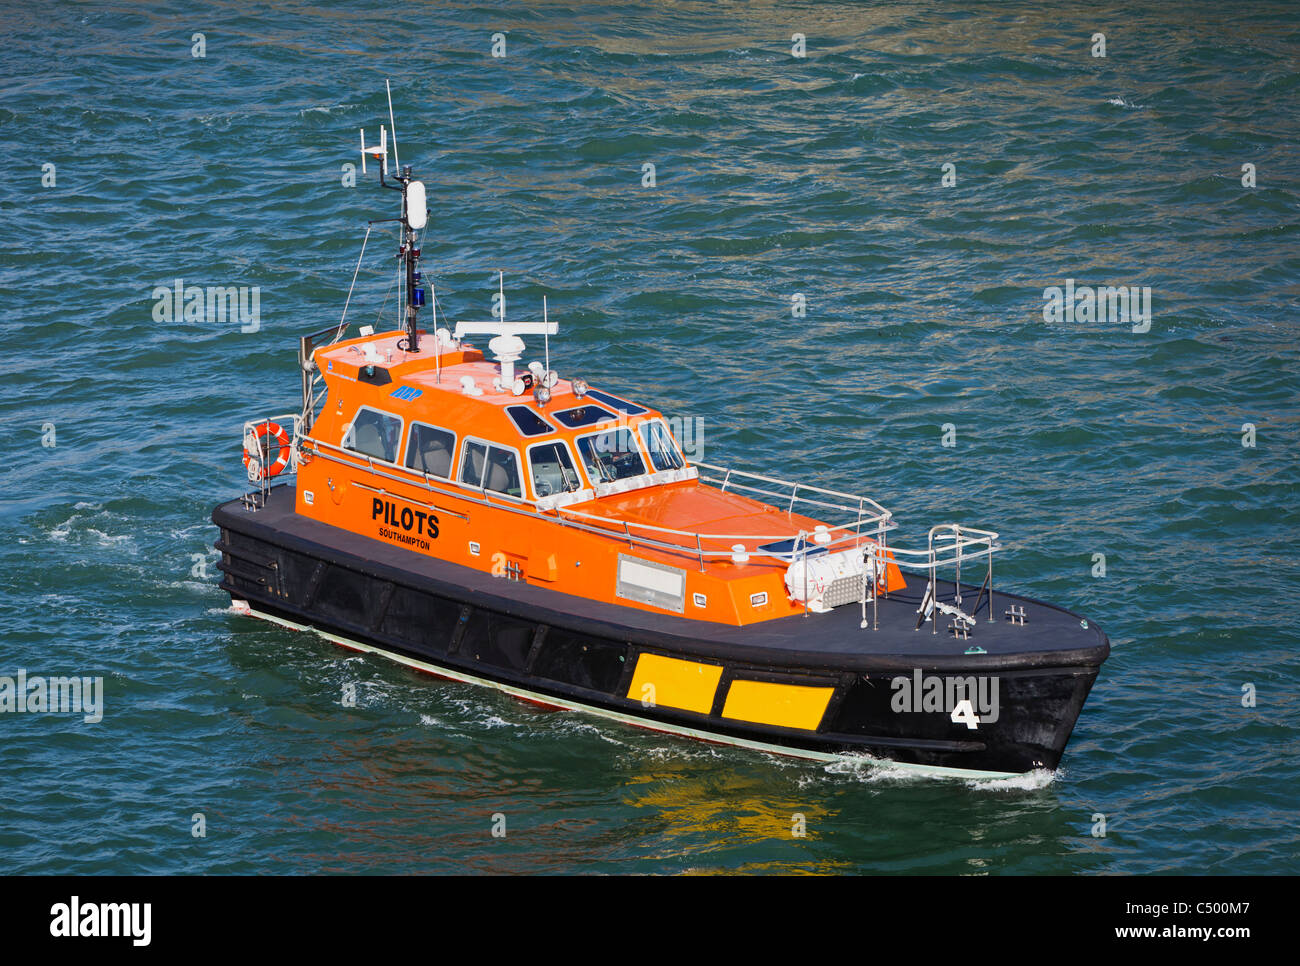 Pilot boat in Portsmouth Harbour England UK - Stock Image